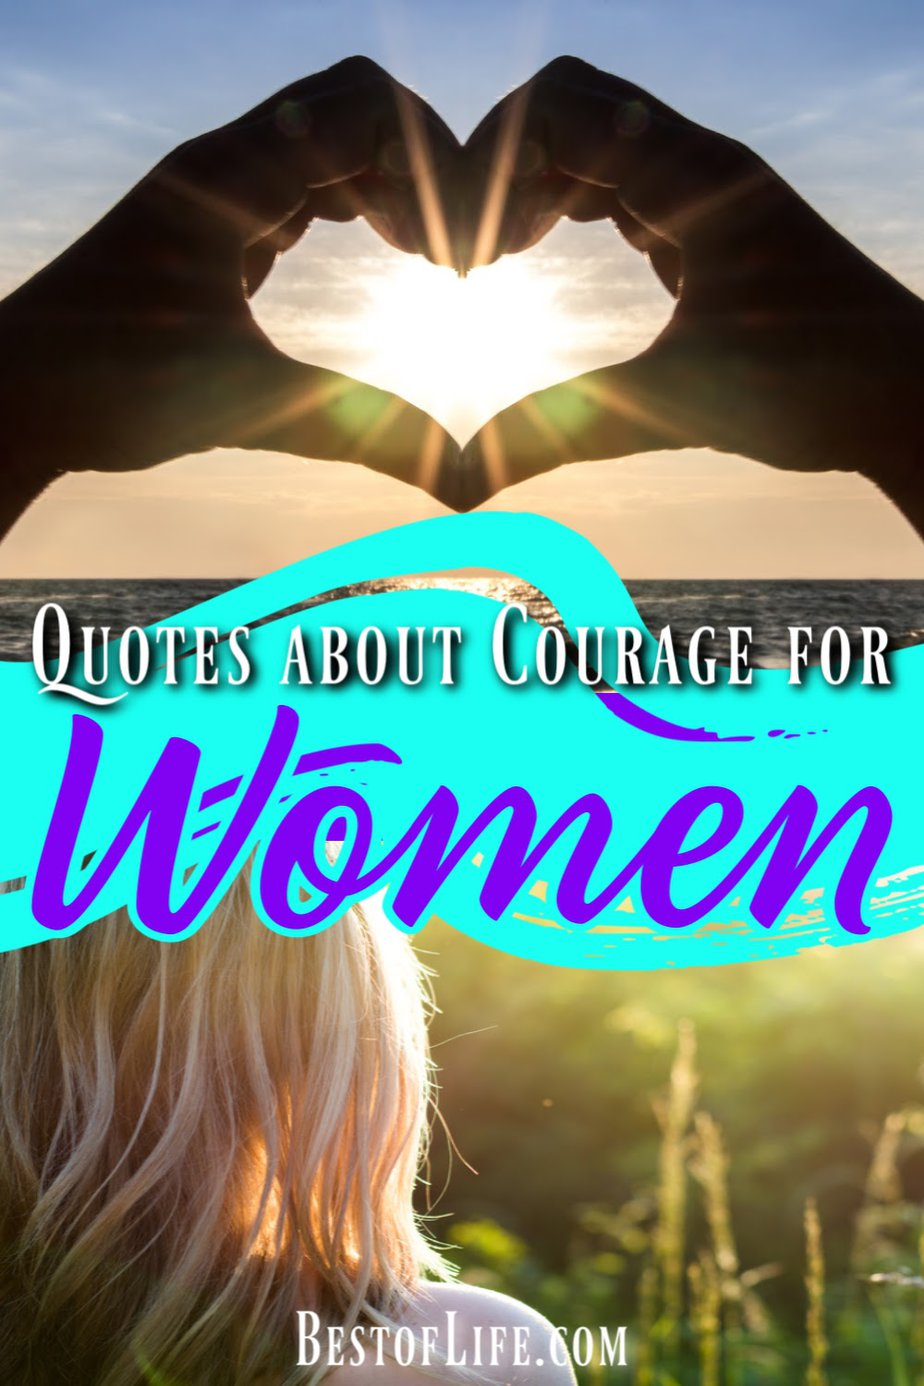 Use the best courage quotes for women to inspire women to find the strength they need to face their fears and achieve new goals. Quotes to Inspire Courage | Quotes for Women | Motivational Quotes | Quotes about Change | Quotes about Fears #quotes #women via @thebestoflife